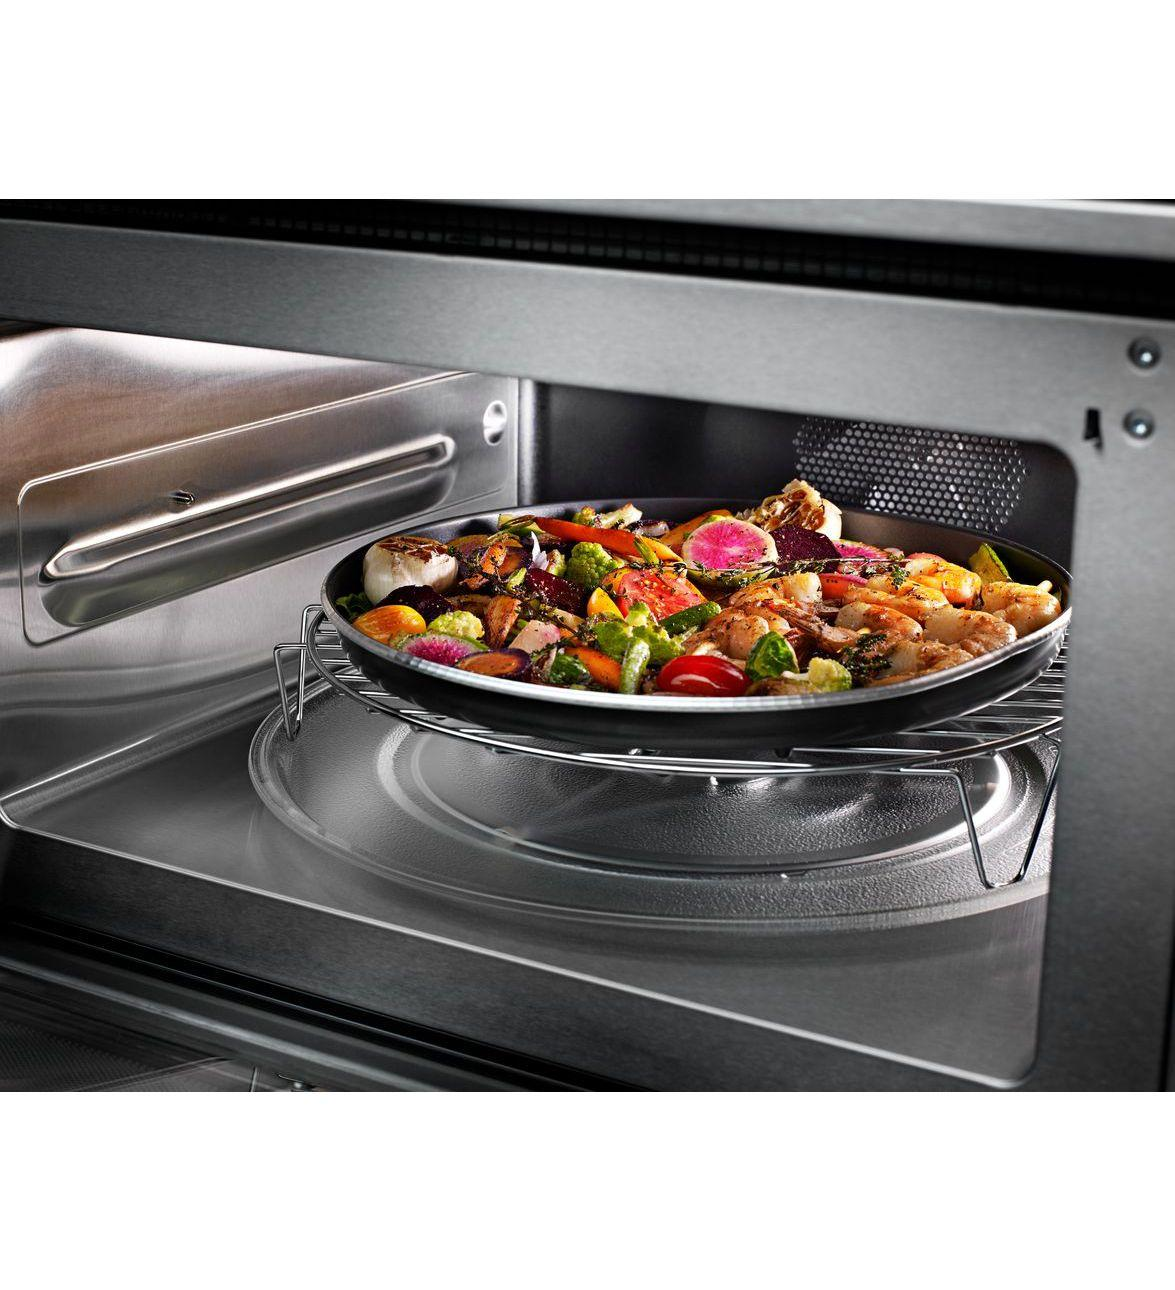 Kitchenaid 30 Inch Built In Microwave Combination Oven